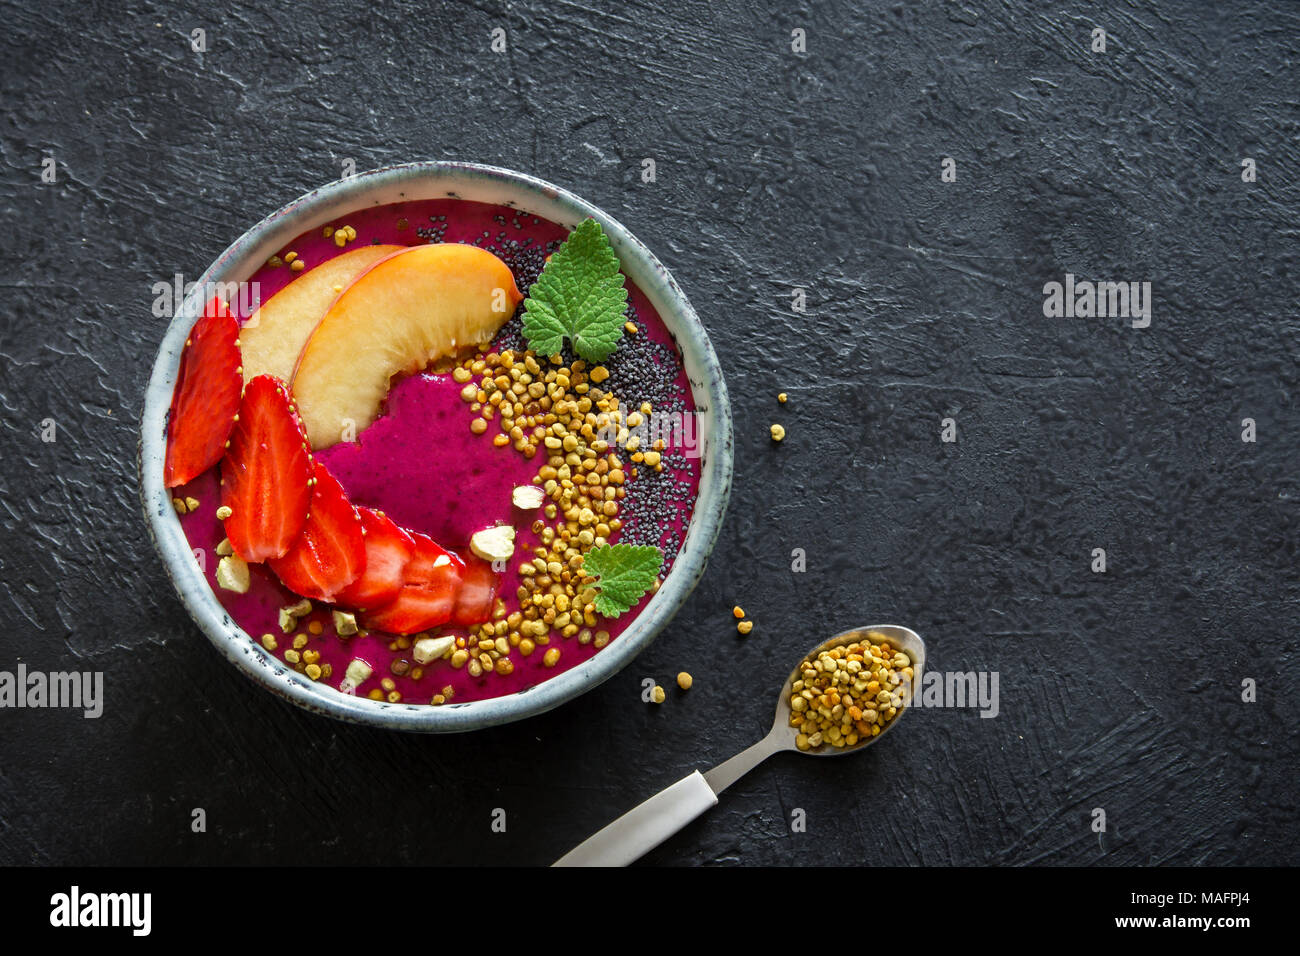 Acai smoothie bowl with chia seeds, fruits, berries (strawberries) and bee pollen for healthy vegan vegetarian diet raw breakfast. Breakfast smoothie  - Stock Image